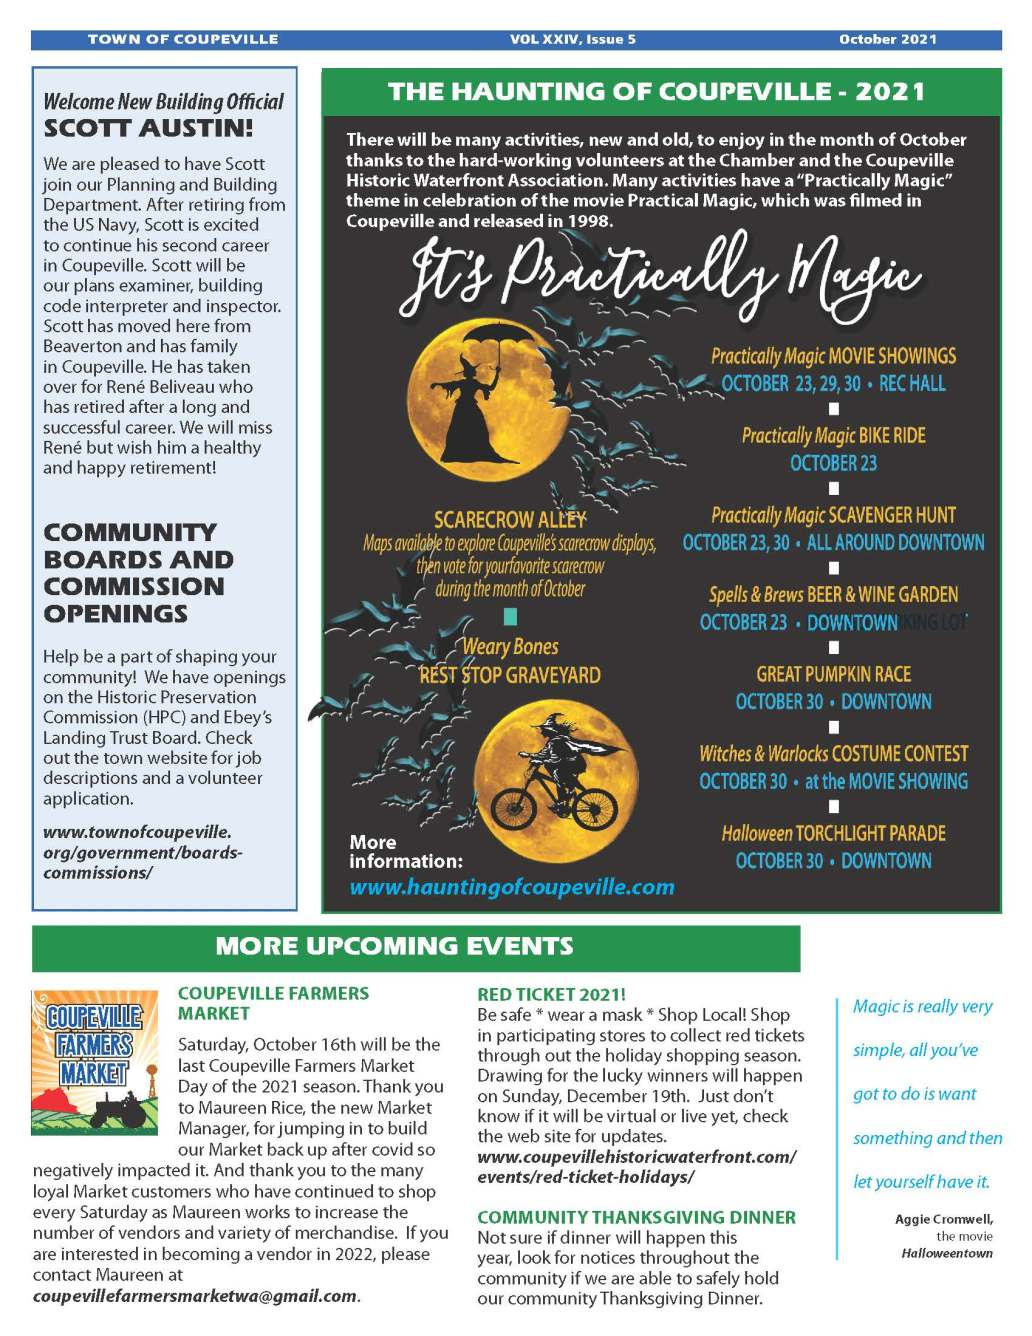 October 2021 Newsletter_Page_2